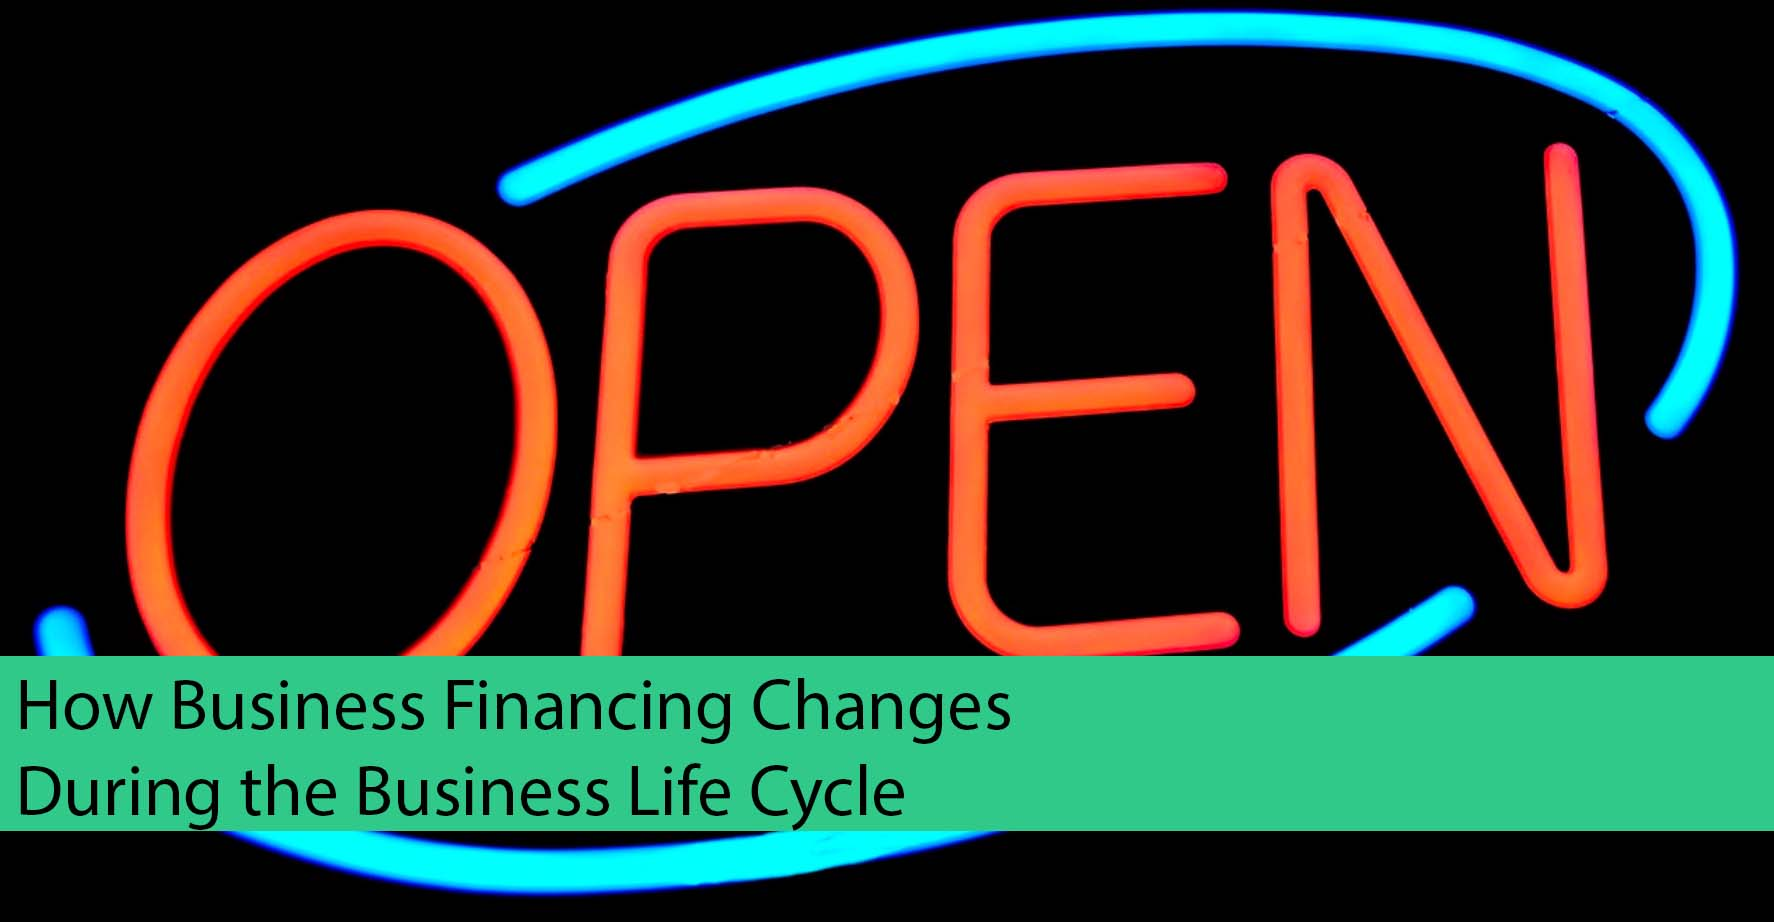 How Business Financing Changes During the Business Life Cycle